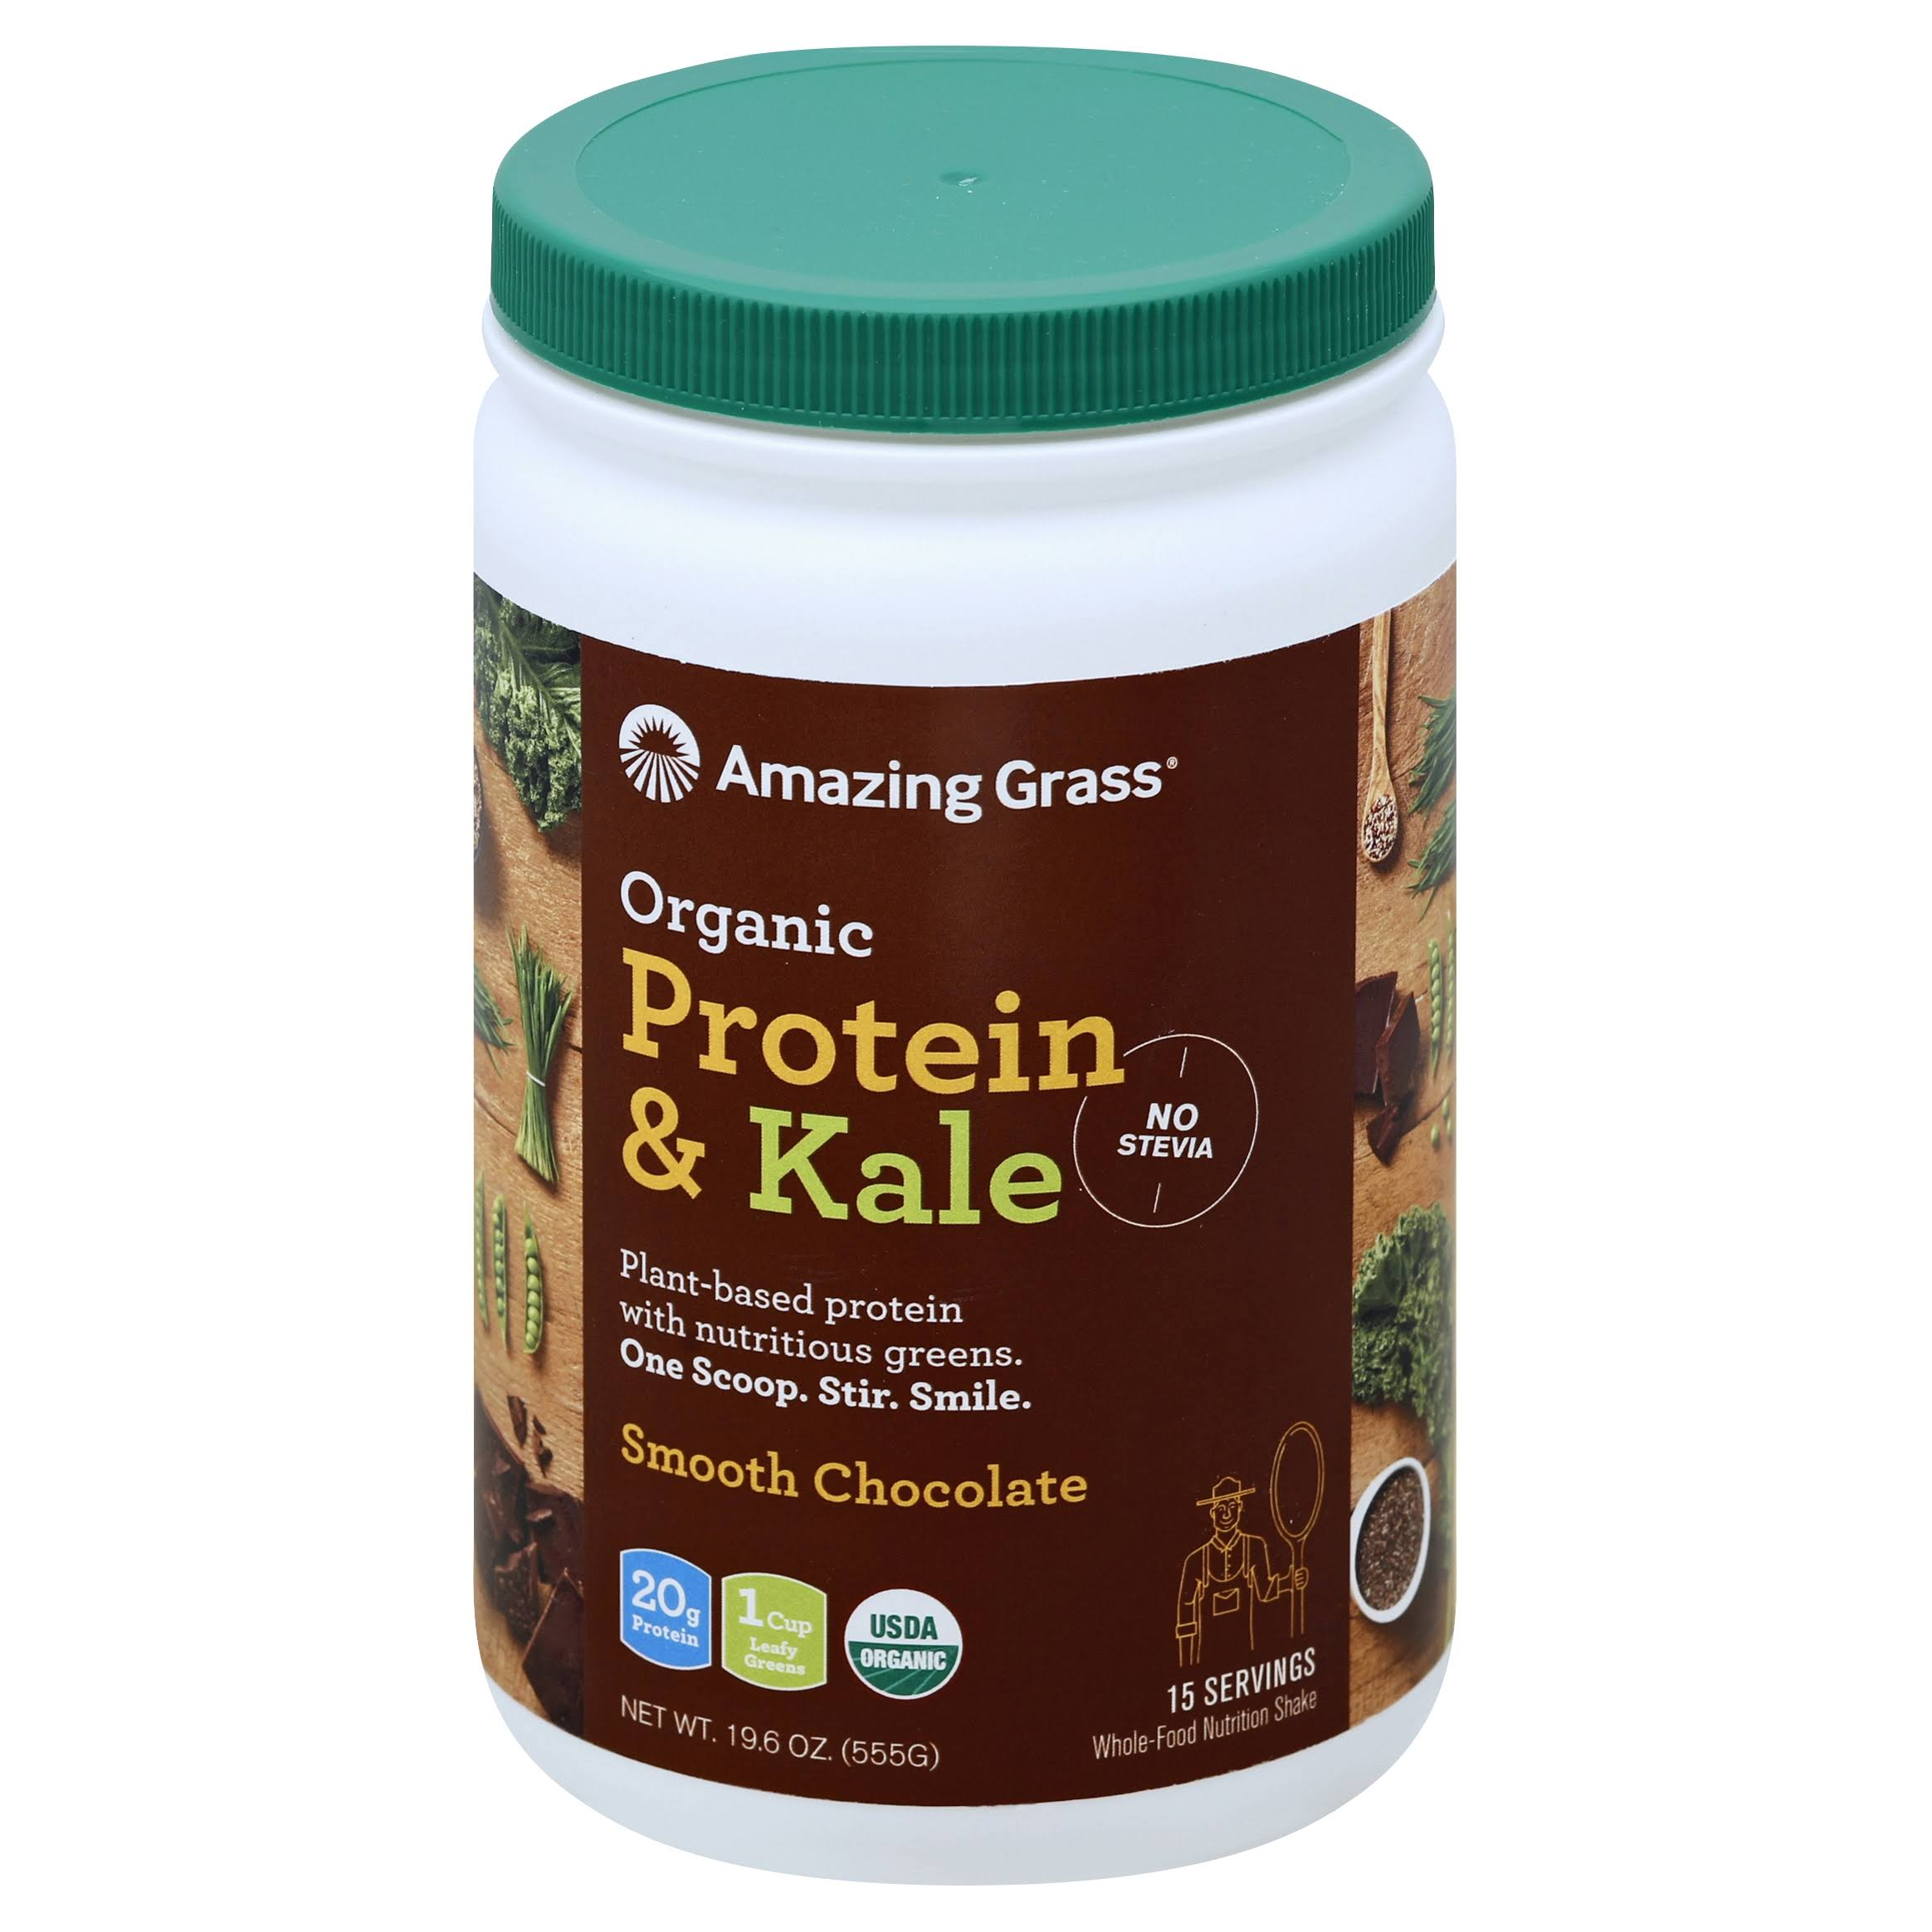 Amazing Grass Organic Vegan Protein and Kale - Chocolate, 19.6oz